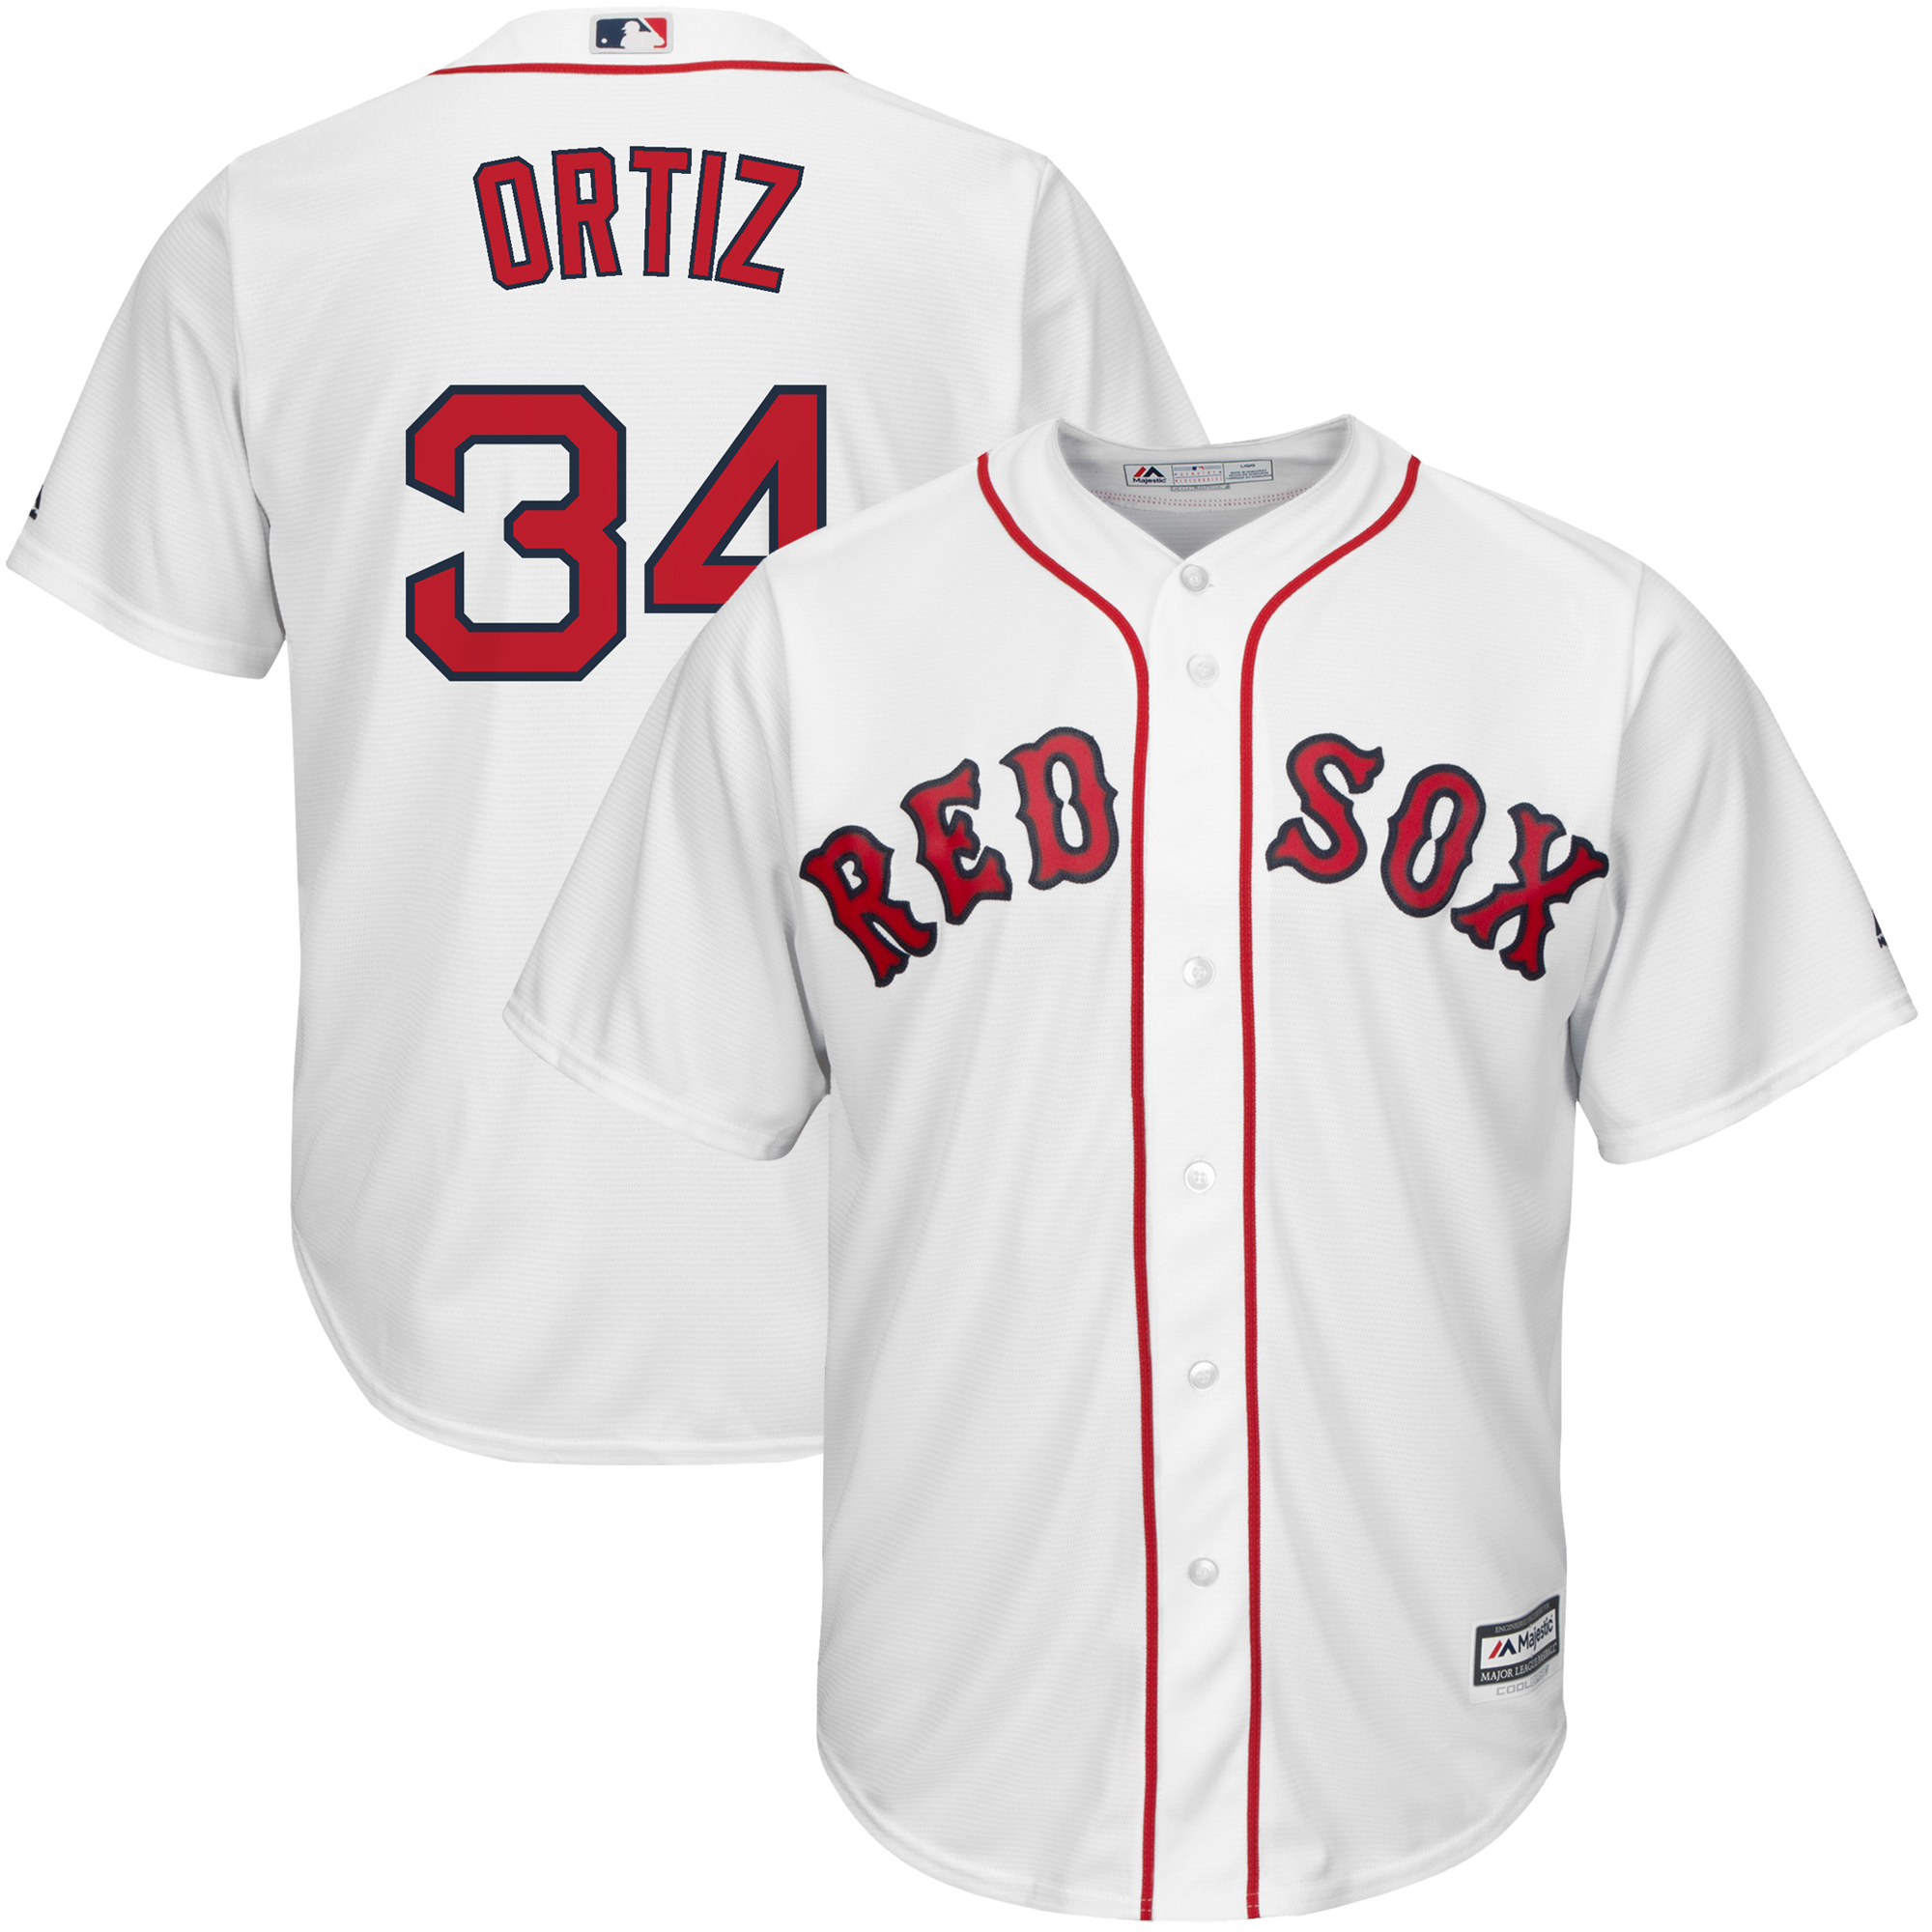 online store 4e754 10c4c David Ortiz Boston Red Sox Majestic Home Official Cool Base Player Jersey -  White